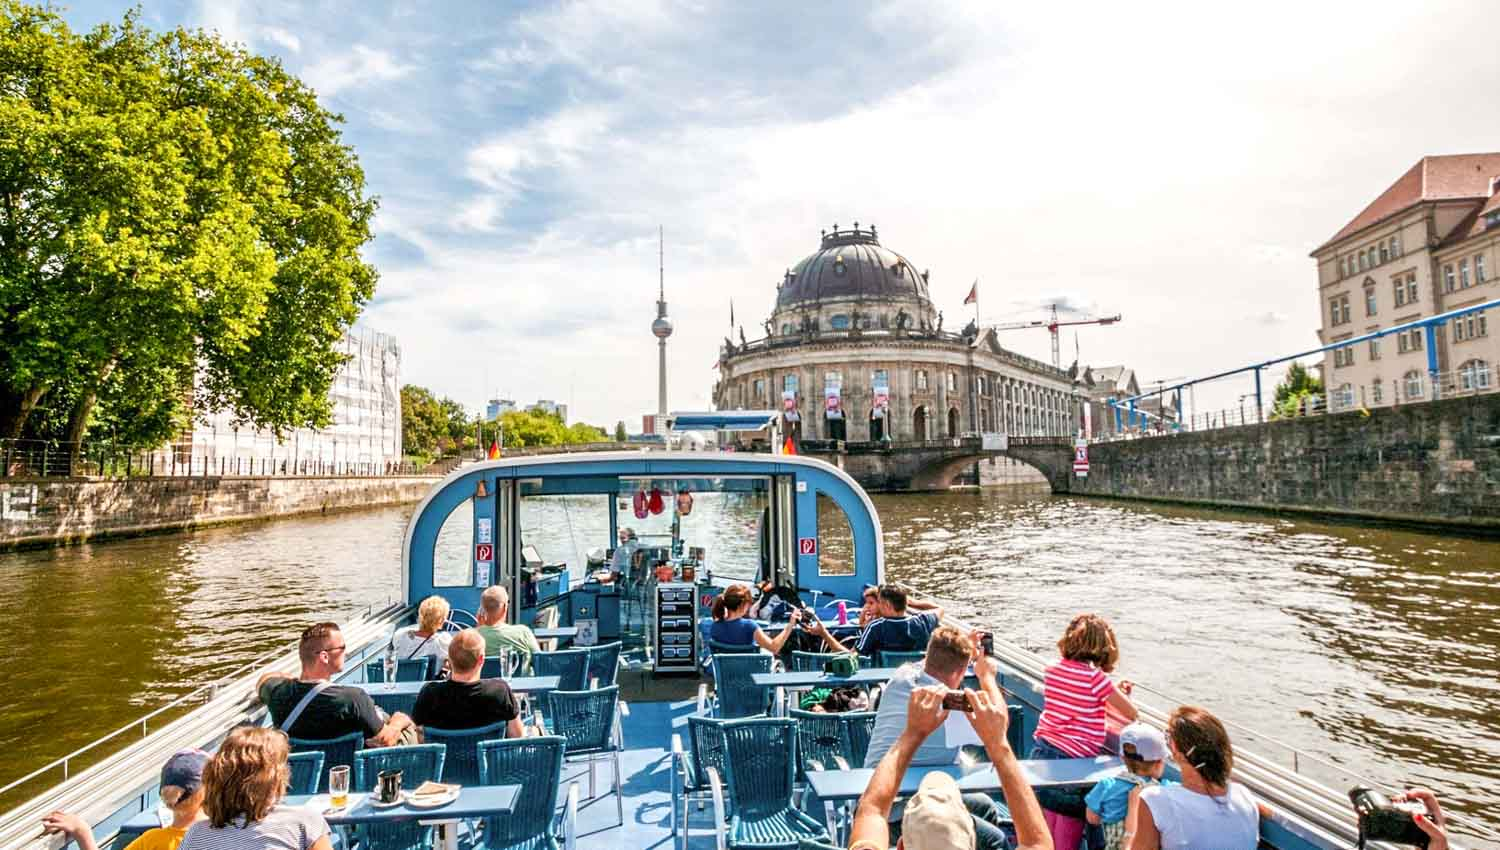 How To Get To Museum Island Berlin